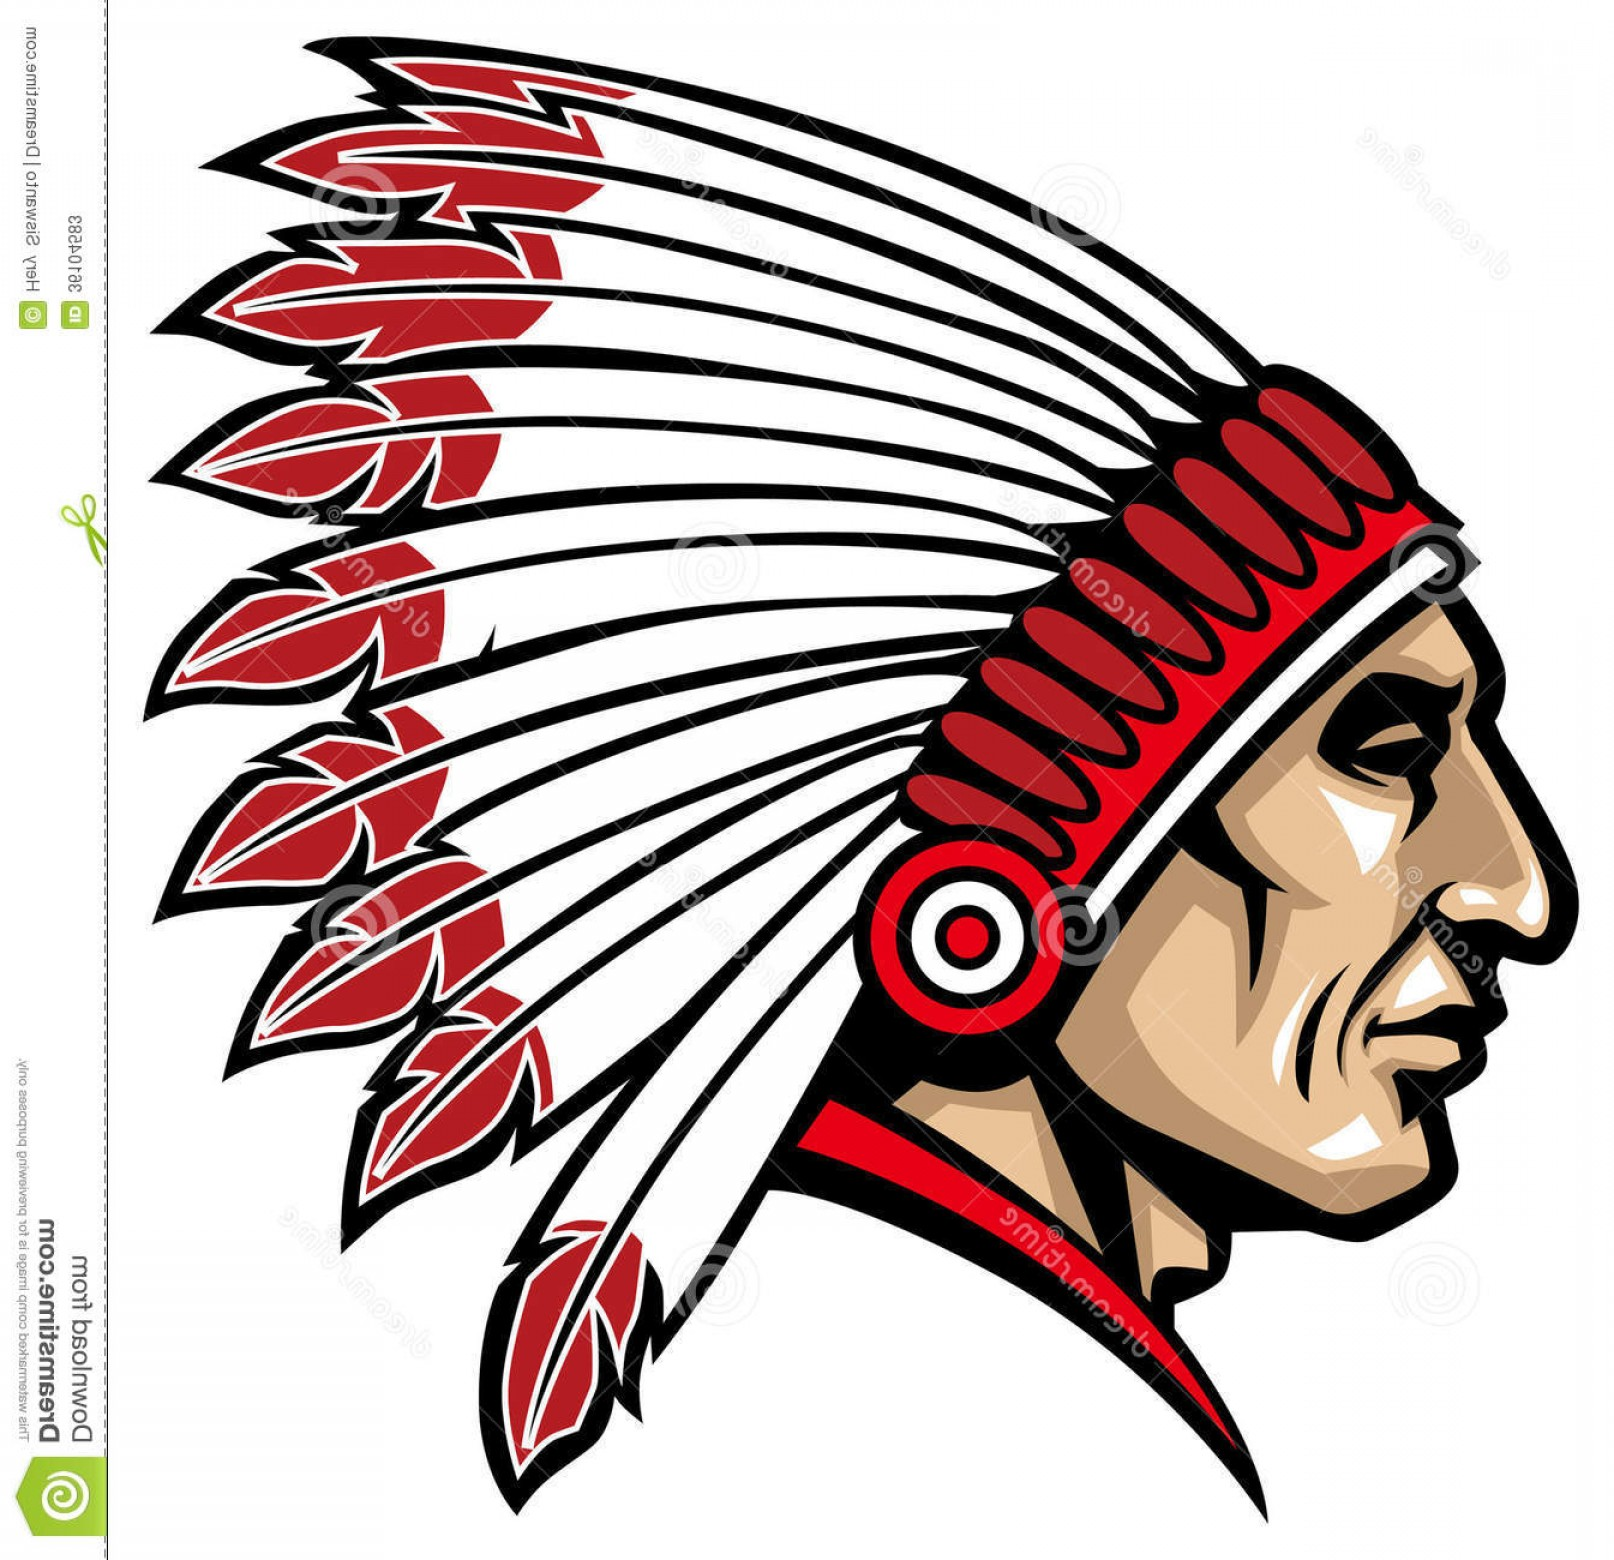 American Indian Chief Vector: Stock Photos American Native Chief Head Vector Indian Suitable As Mascot Sticker Print T Shirt Etc Image